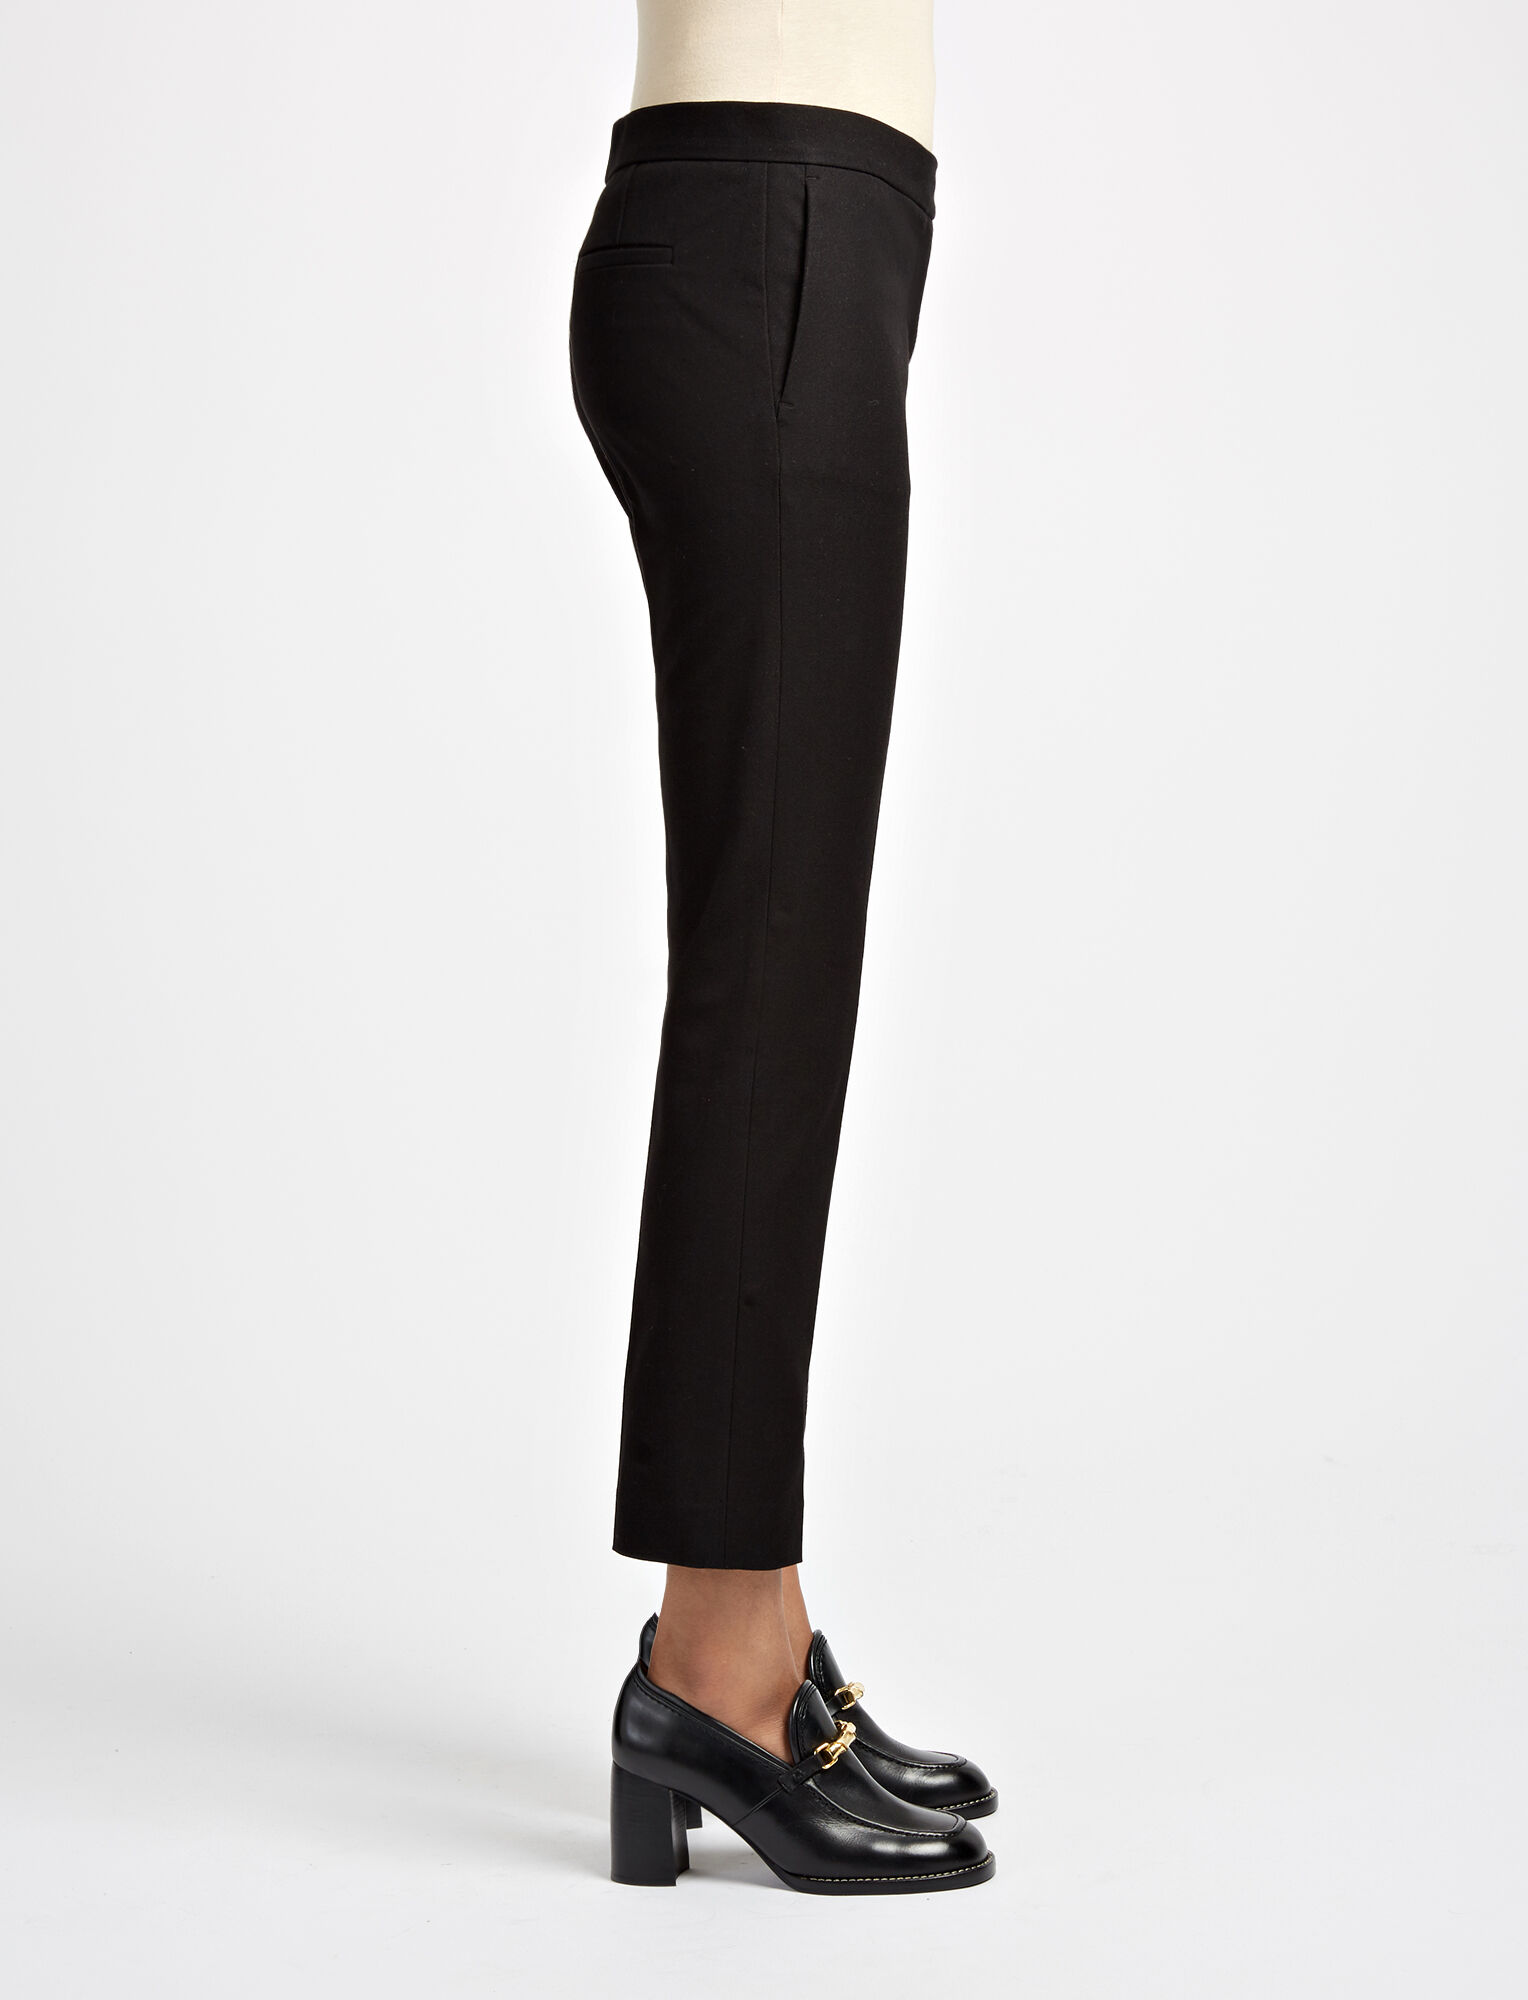 Joseph, Gabardine Stretch Finley Trousers, in BLACK